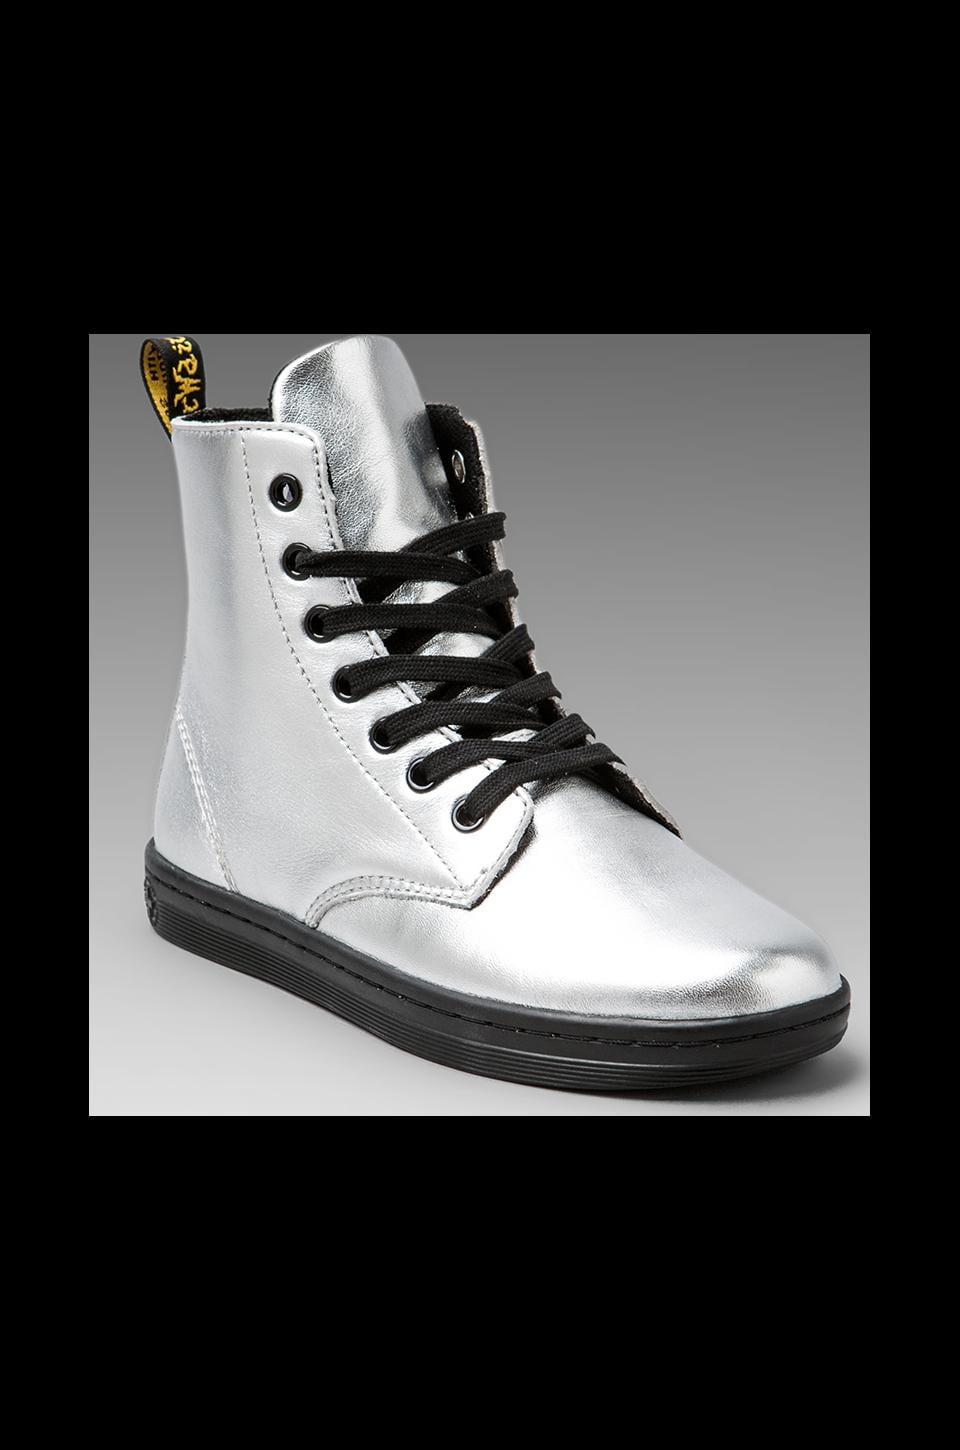 Dr. Martens Leyton 7-Eye Boot in Silver